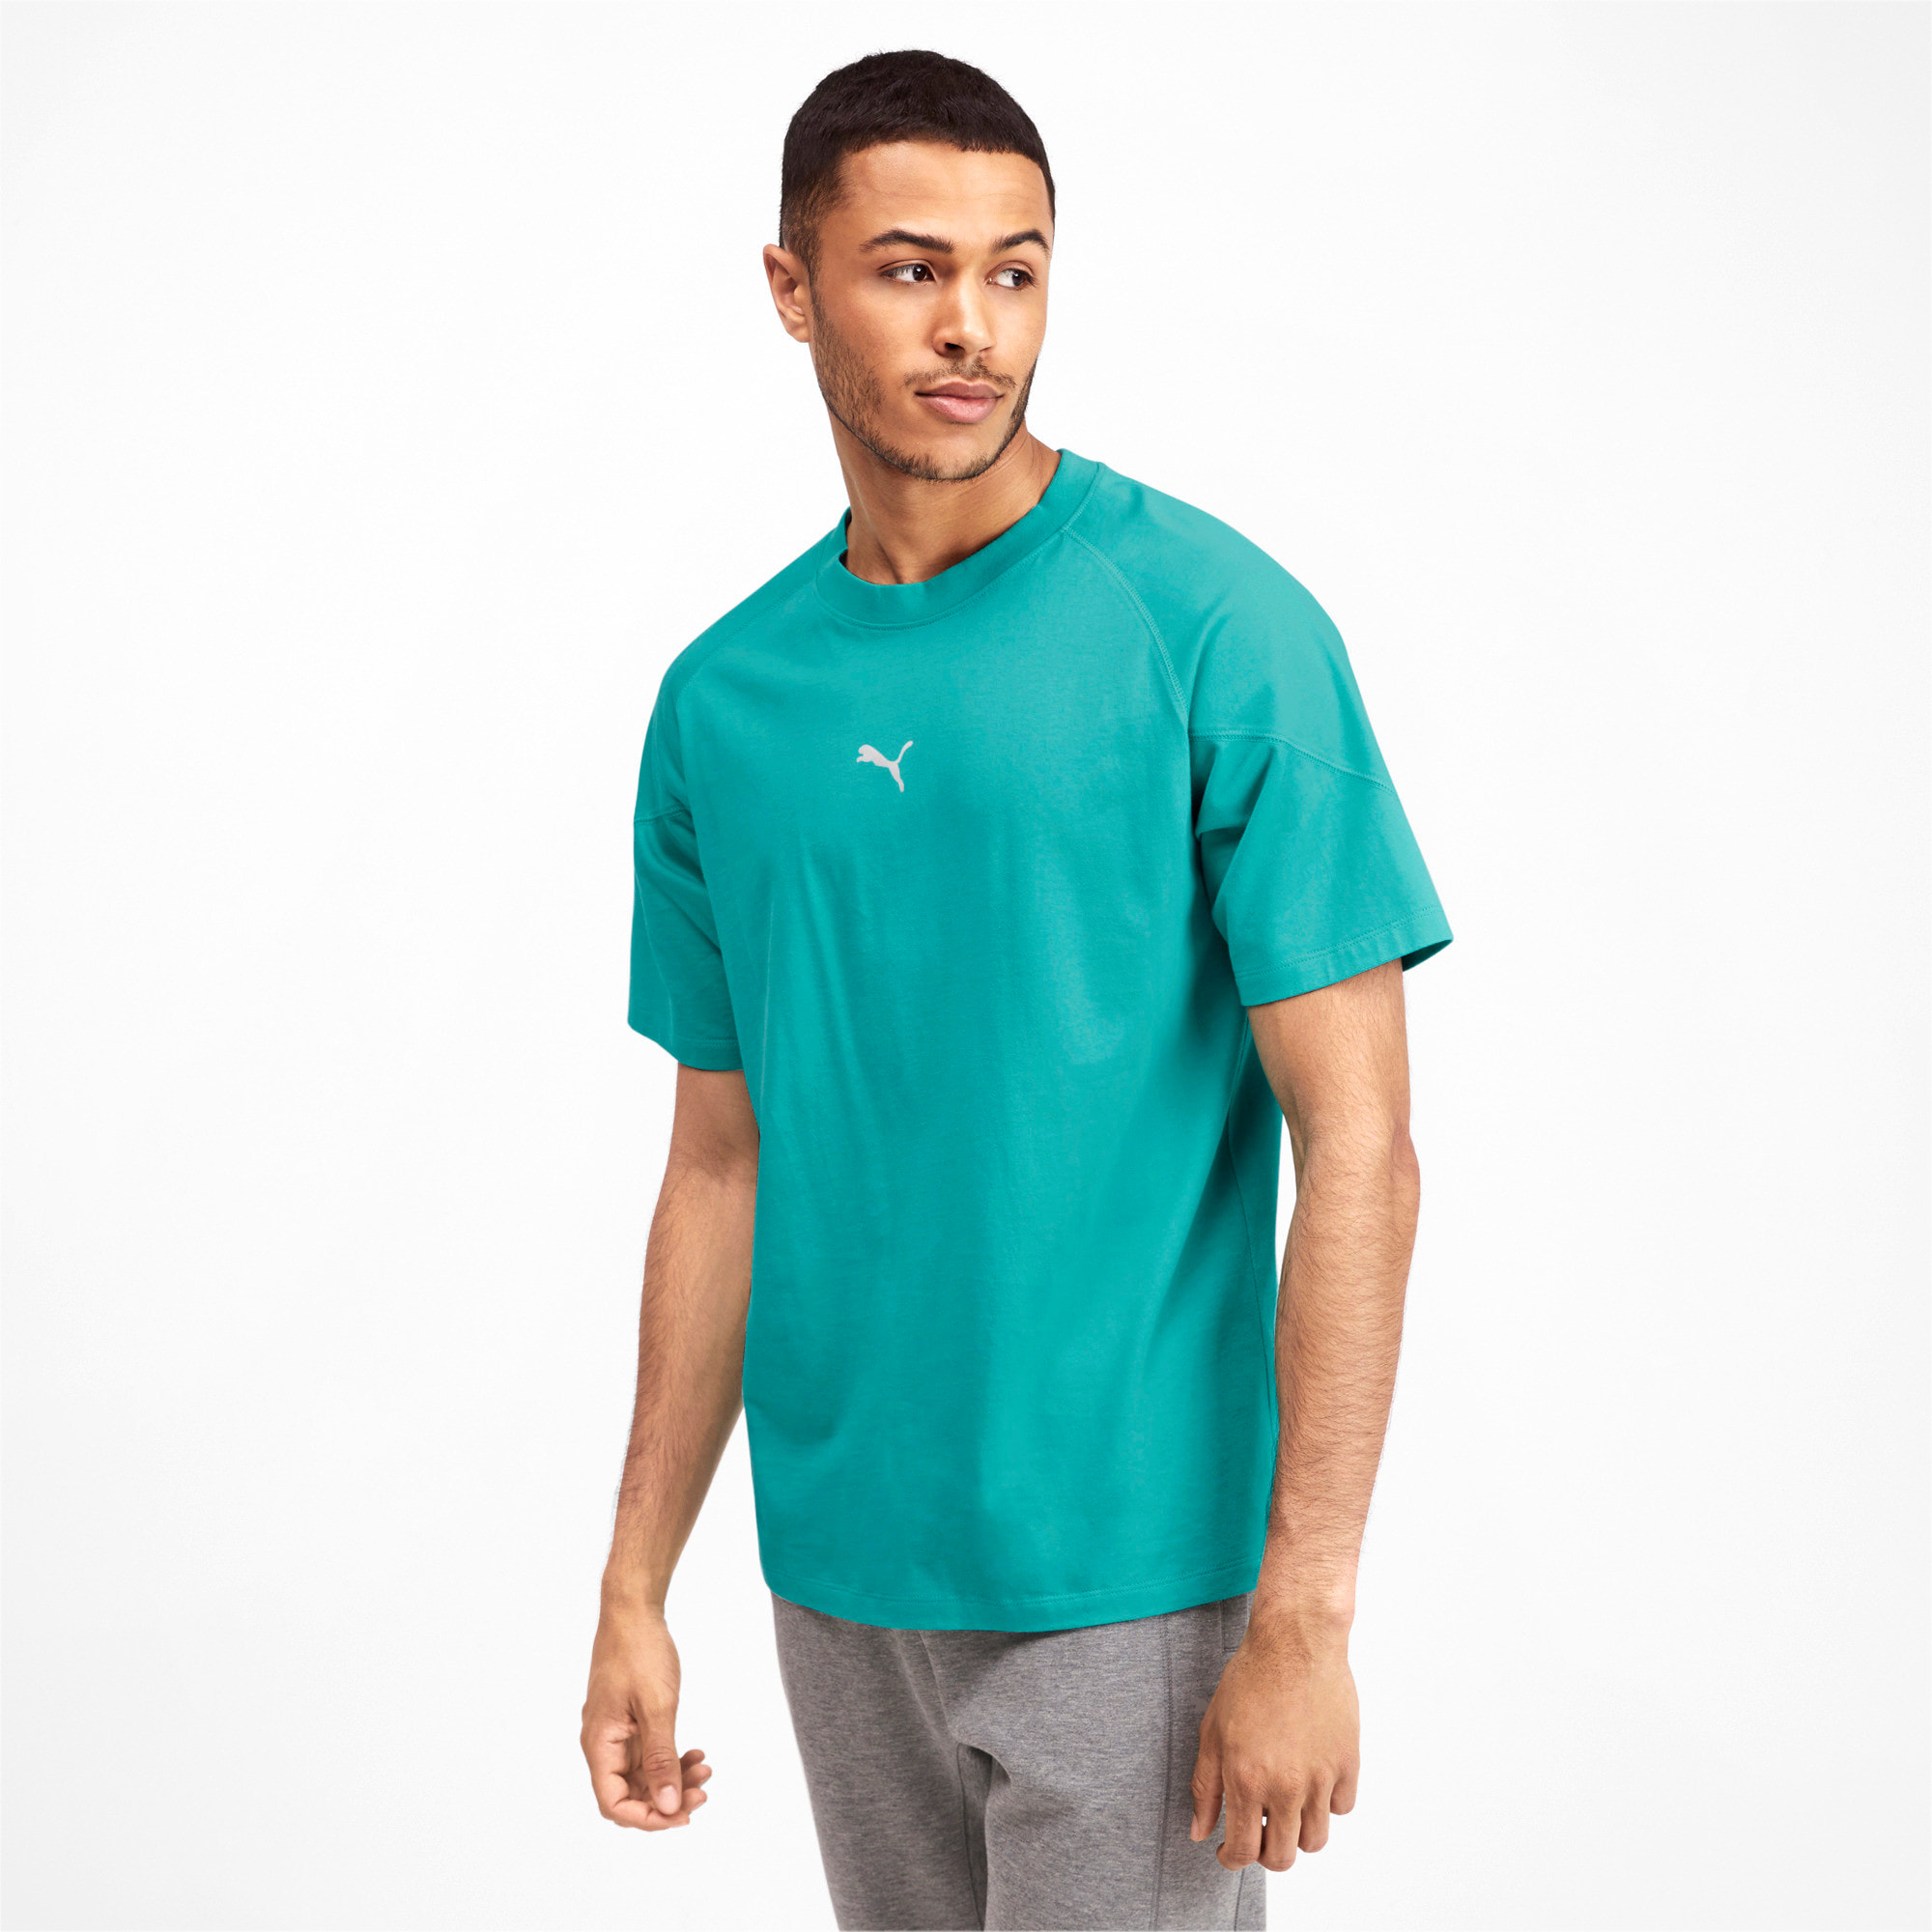 Thumbnail 2 of Epoch Men's Tee, Blue Turquoise, medium